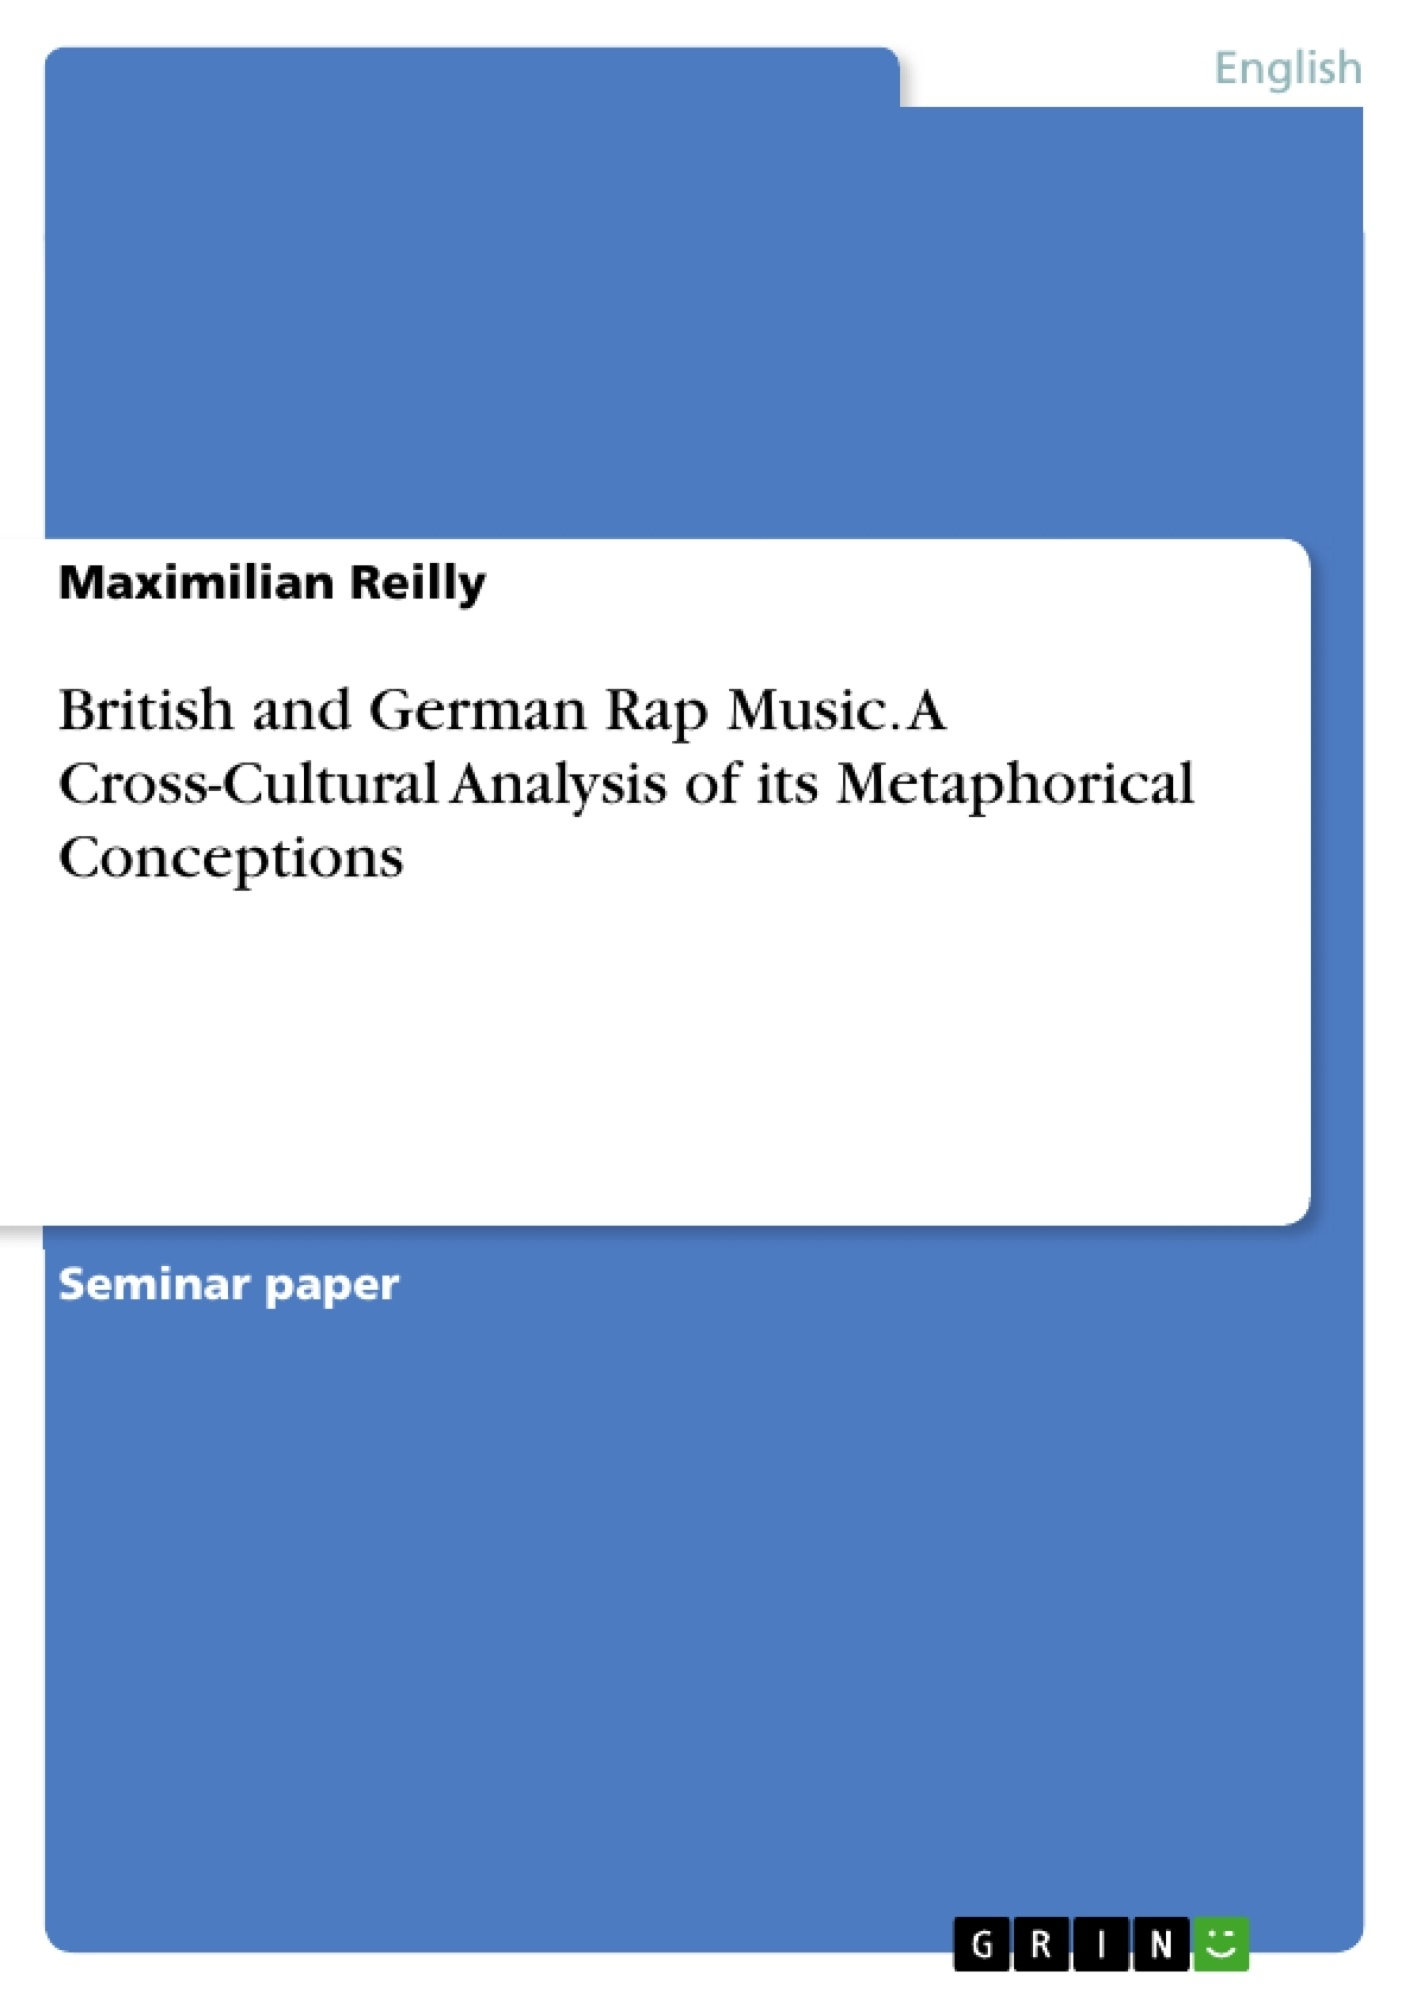 Title: British and German Rap Music. A Cross-Cultural Analysis of its Metaphorical Conceptions